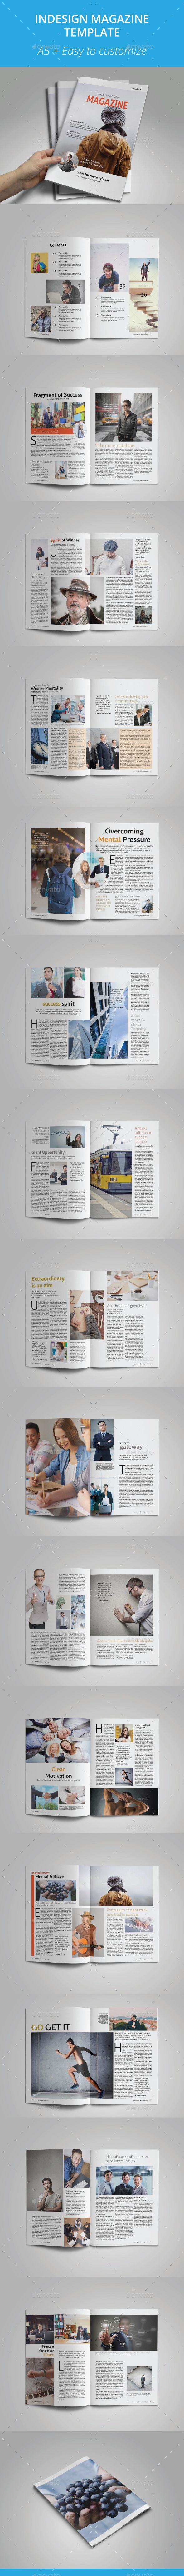 A5 Indesign Magazine - Magazines Print Templates Download here : https://graphicriver.net/item/a5-indesign-magazine/16396046?s_rank=205&ref=Al-fatih